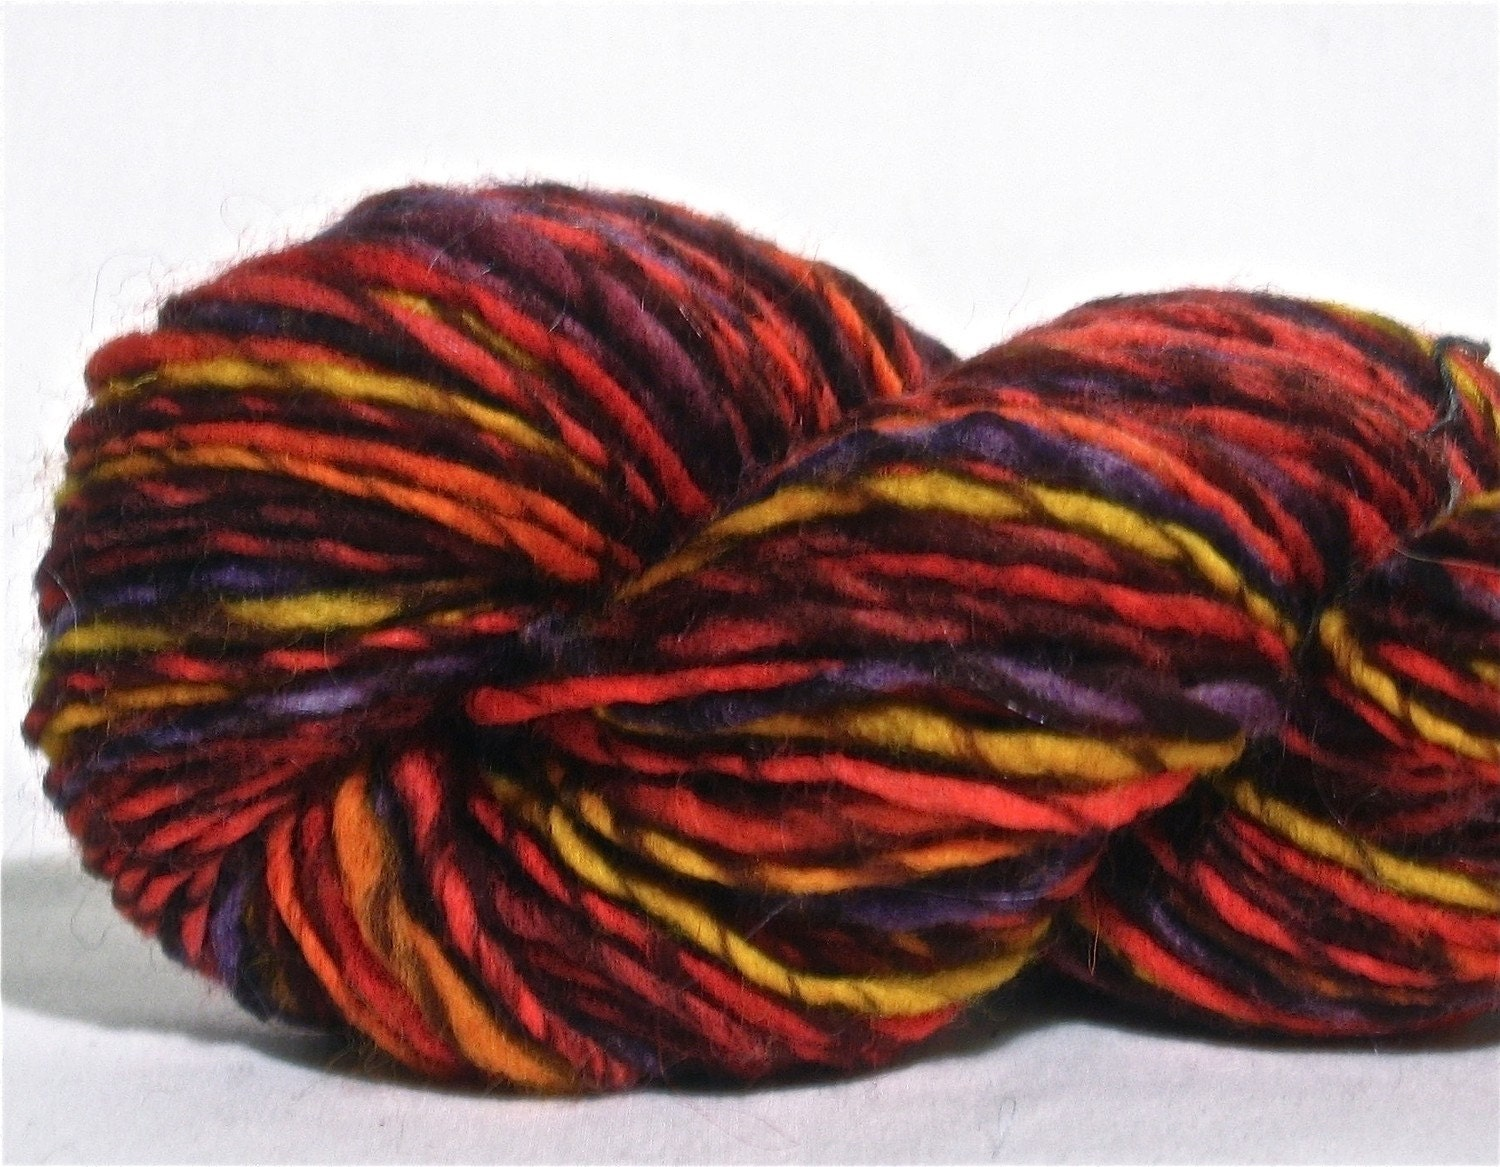 Worsted Weight Yarn : Handspun Yarn Worsted Weight Wool Singles by spinynormanknits